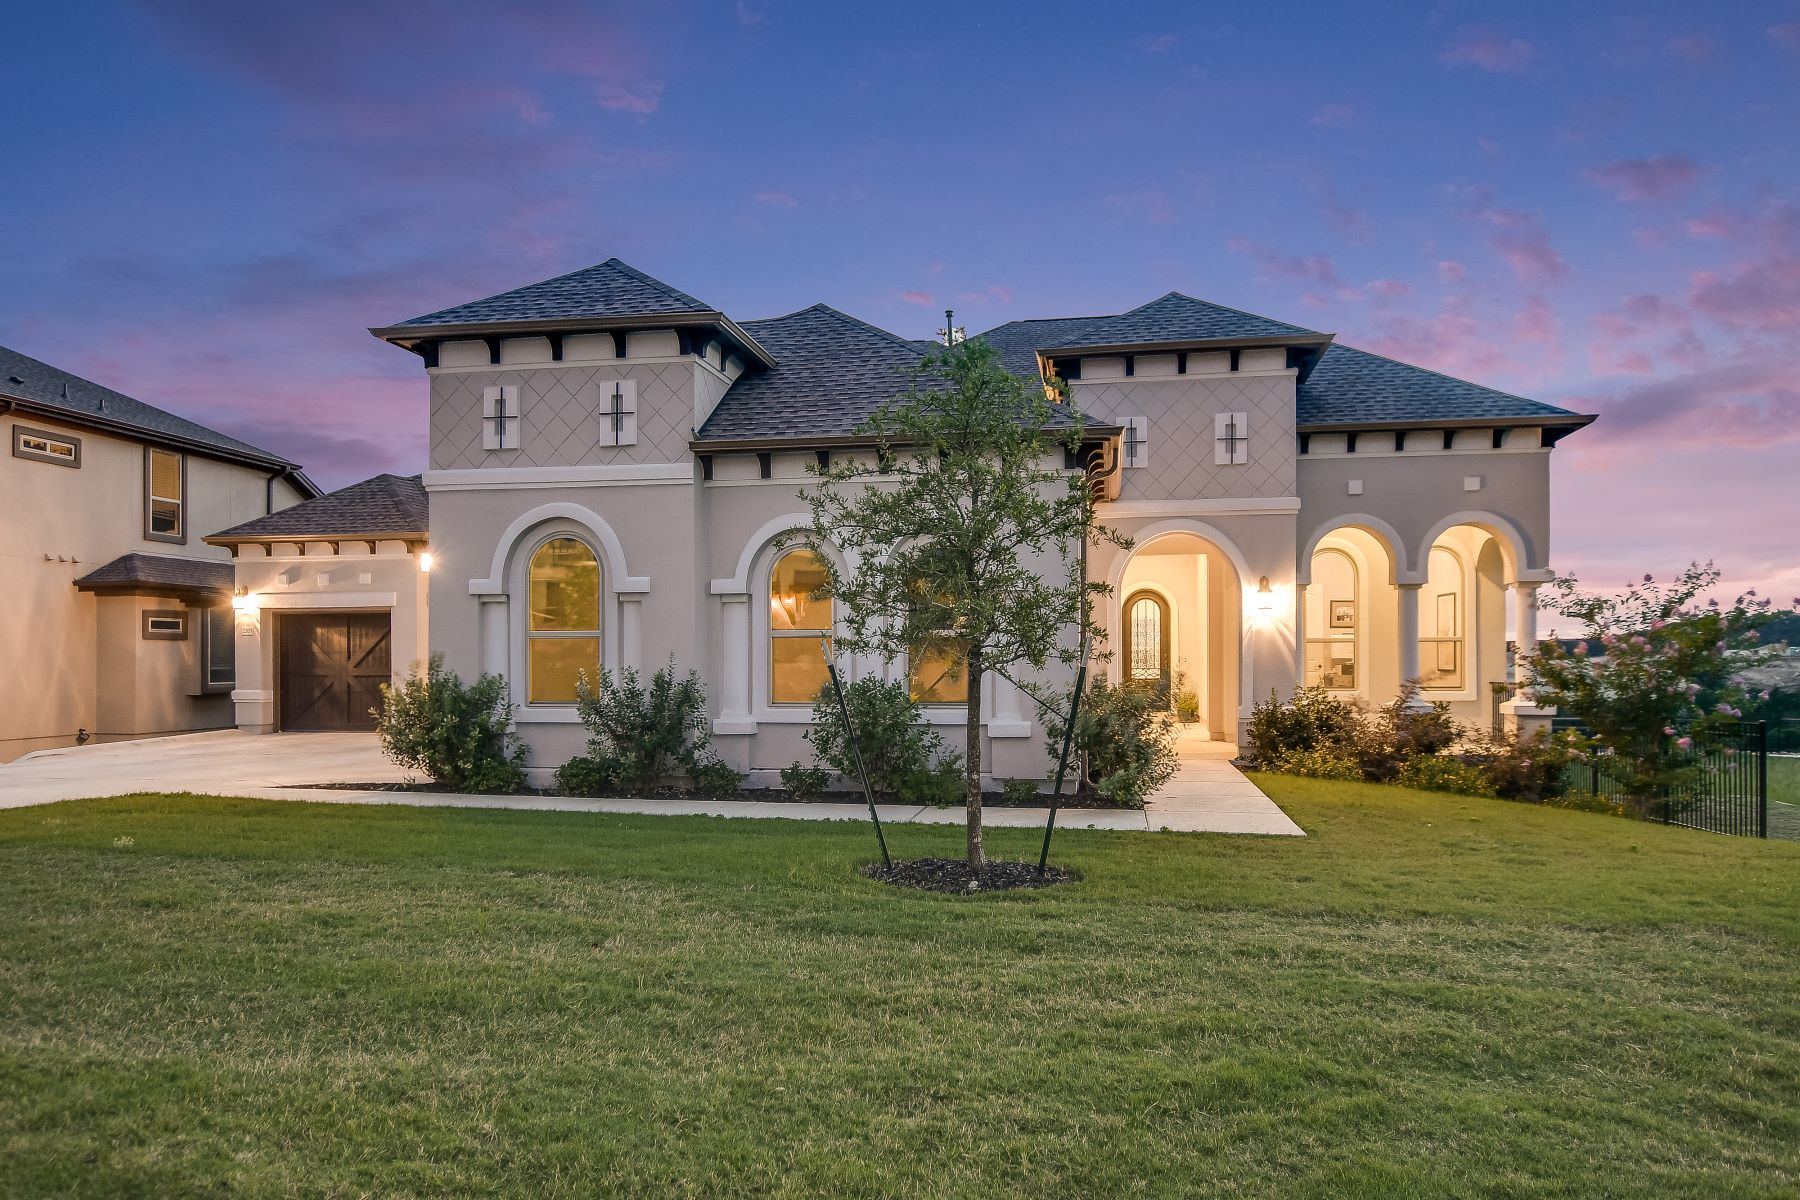 Single Family Homes for Sale at 2205 Milan Meadows Drive, Leander, TX 78641 2205 Milan Meadows Drive Leander, Texas 78641 United States